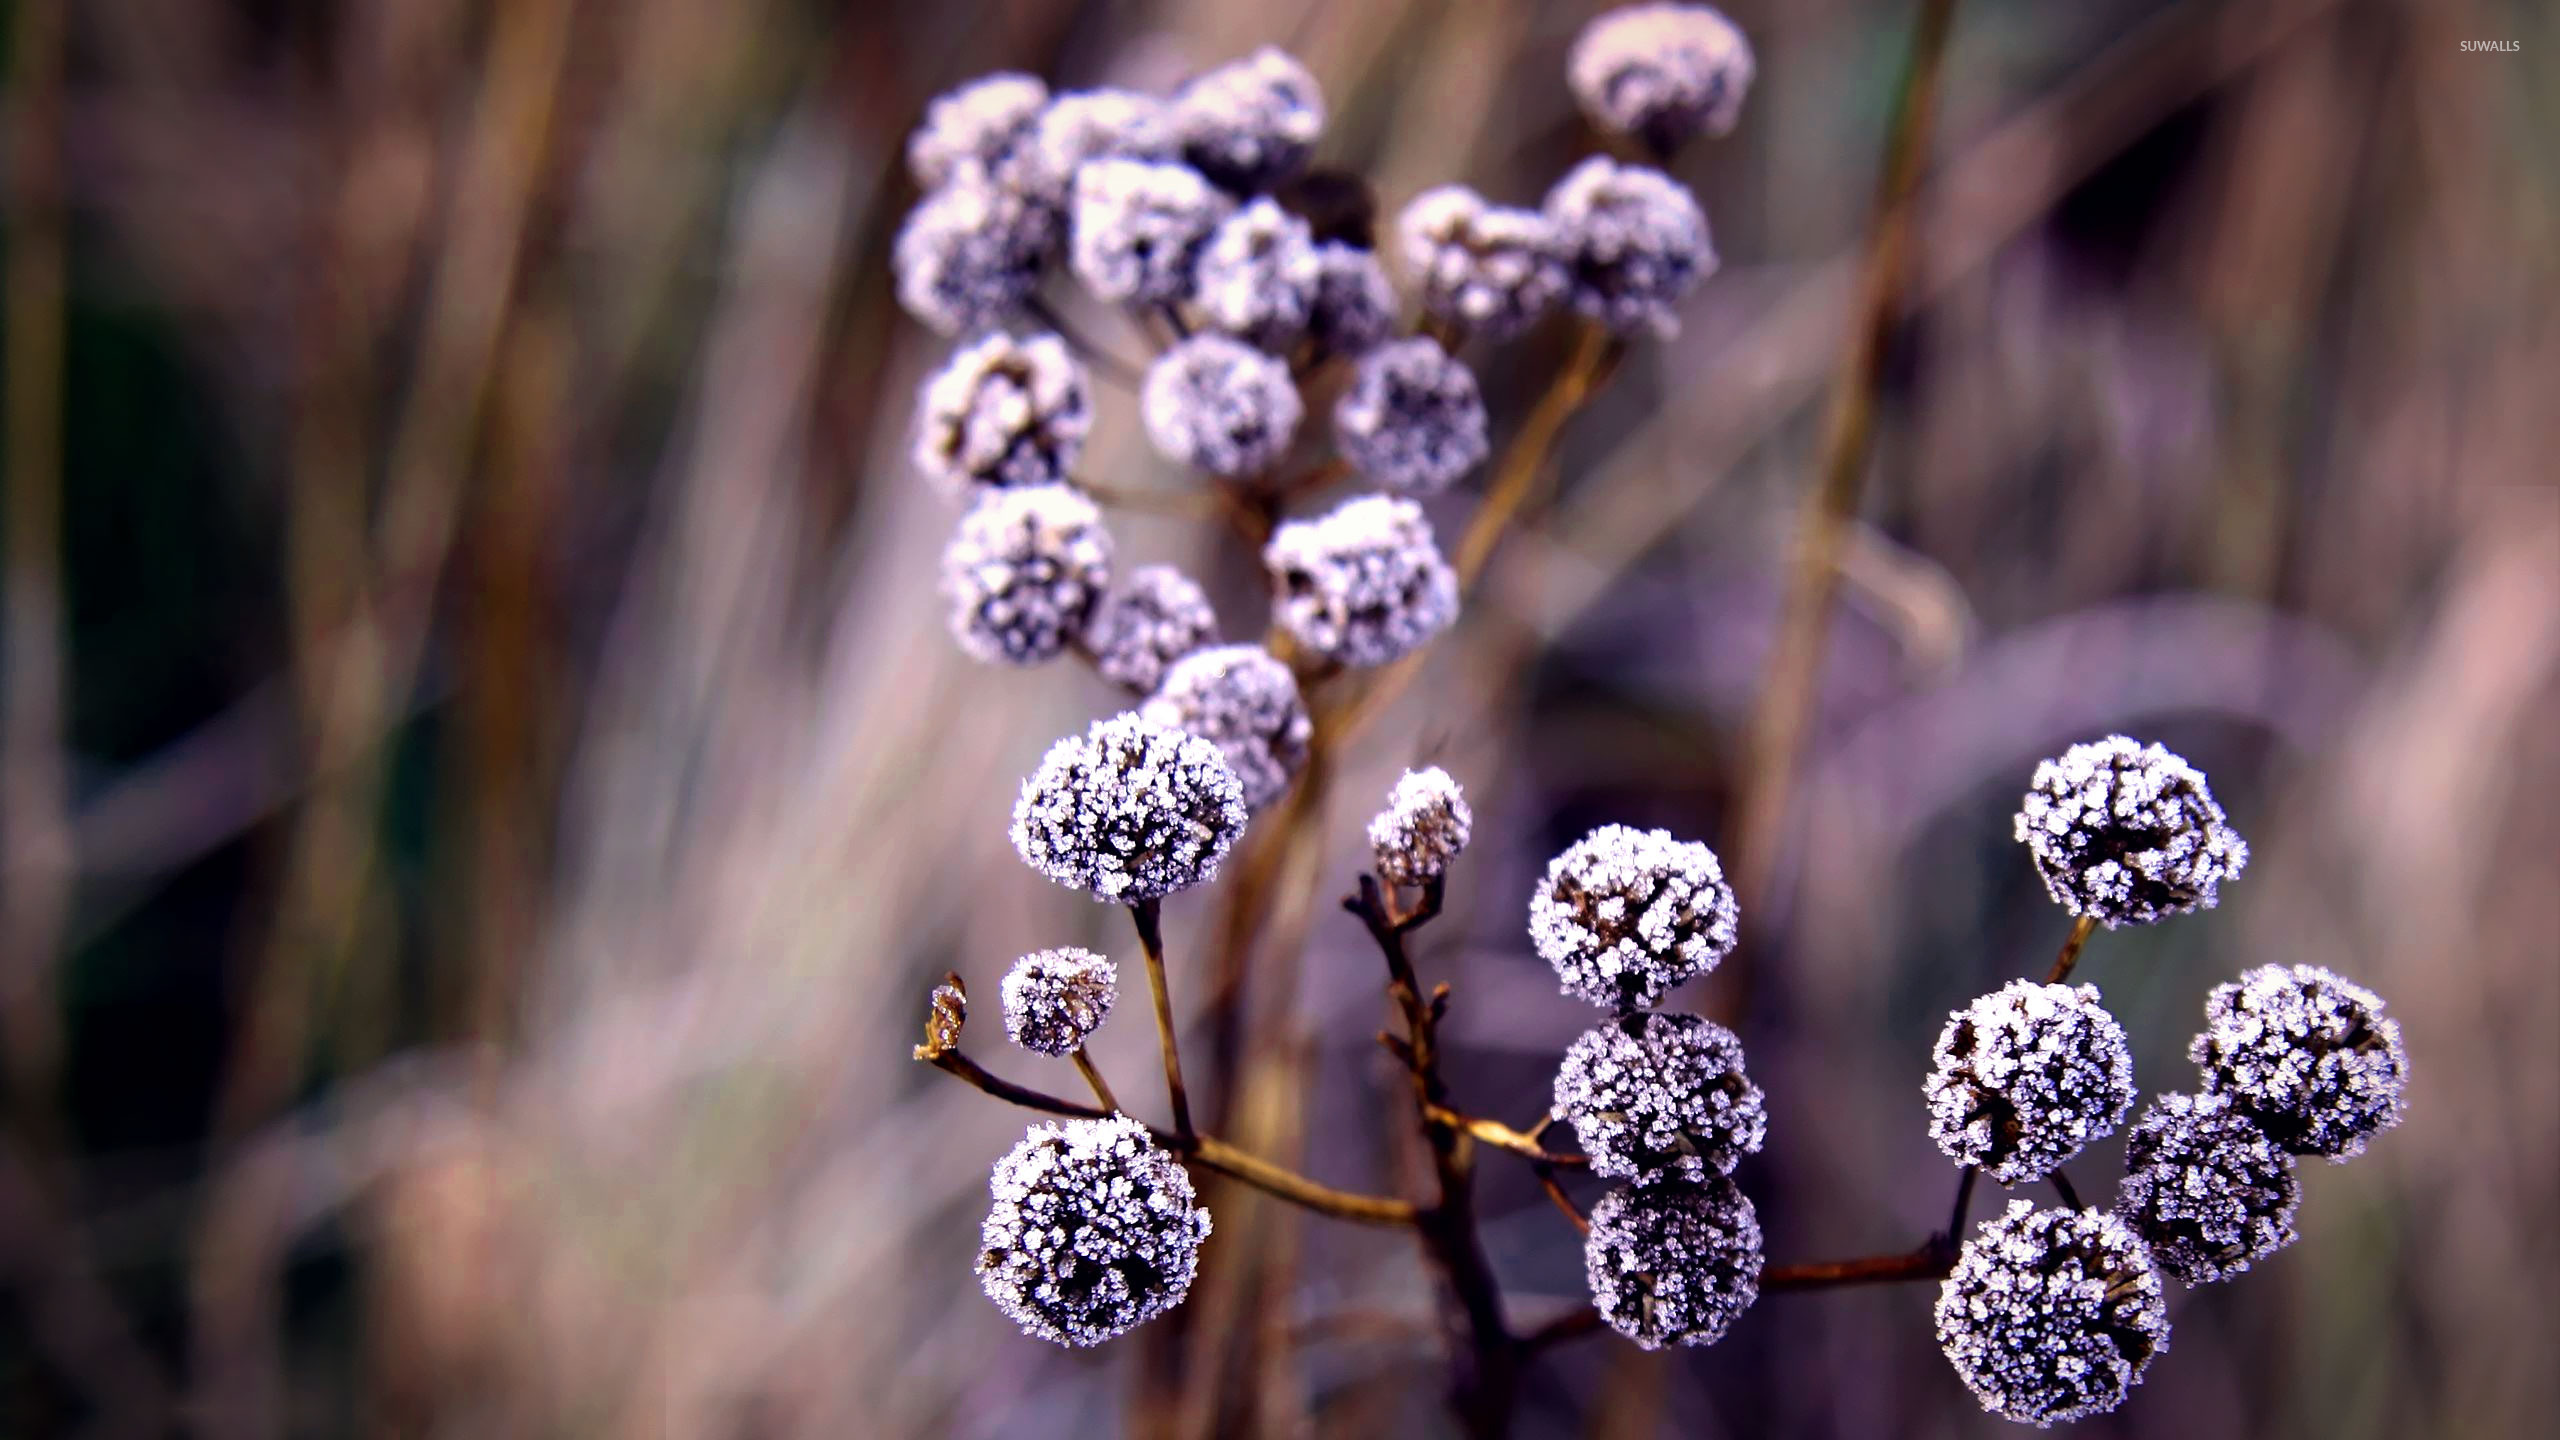 Fall Wallpaper For Computer Desktop Frozen Flower Buds Wallpaper Photography Wallpapers 18637